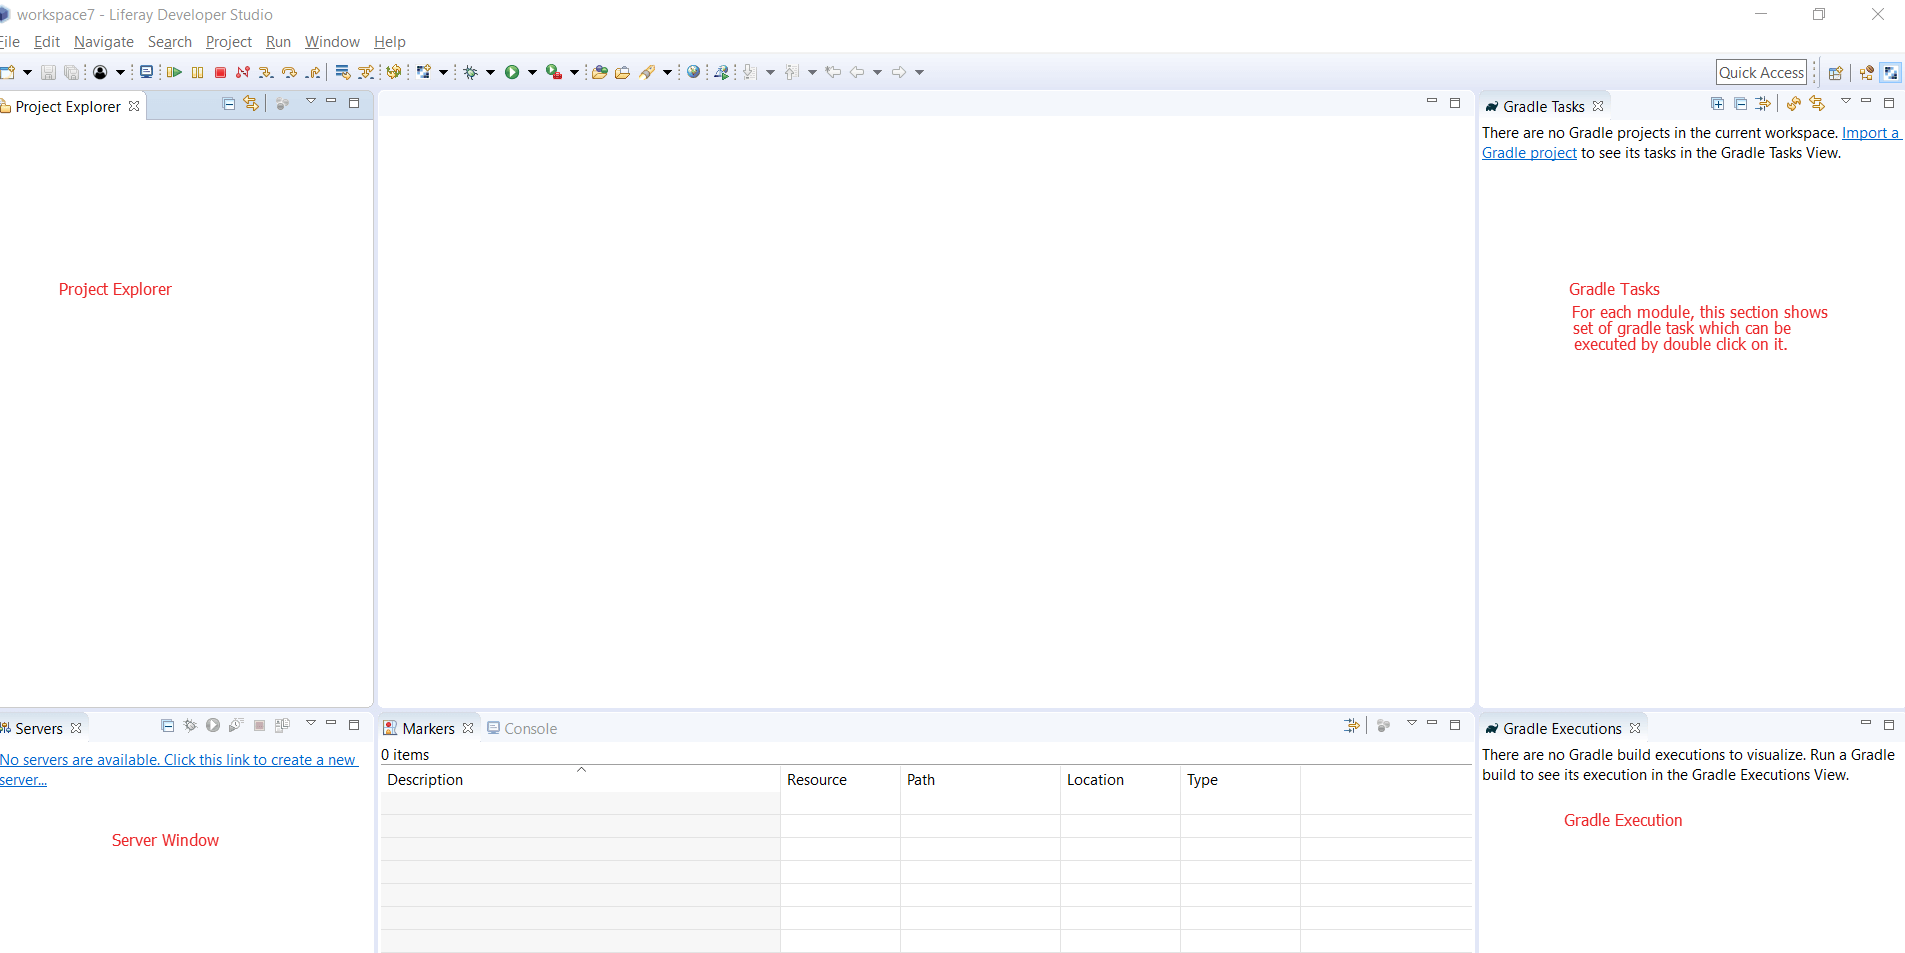 Liferay workspace perspective